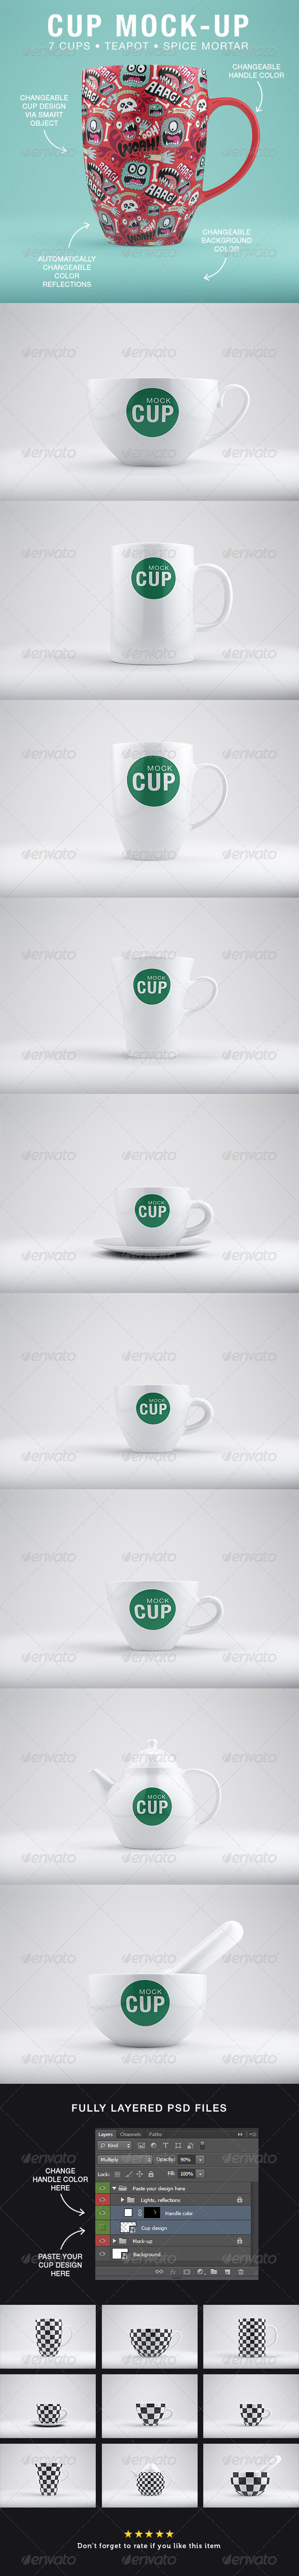 GraphicRiver Cup Mock-Up s 5531771